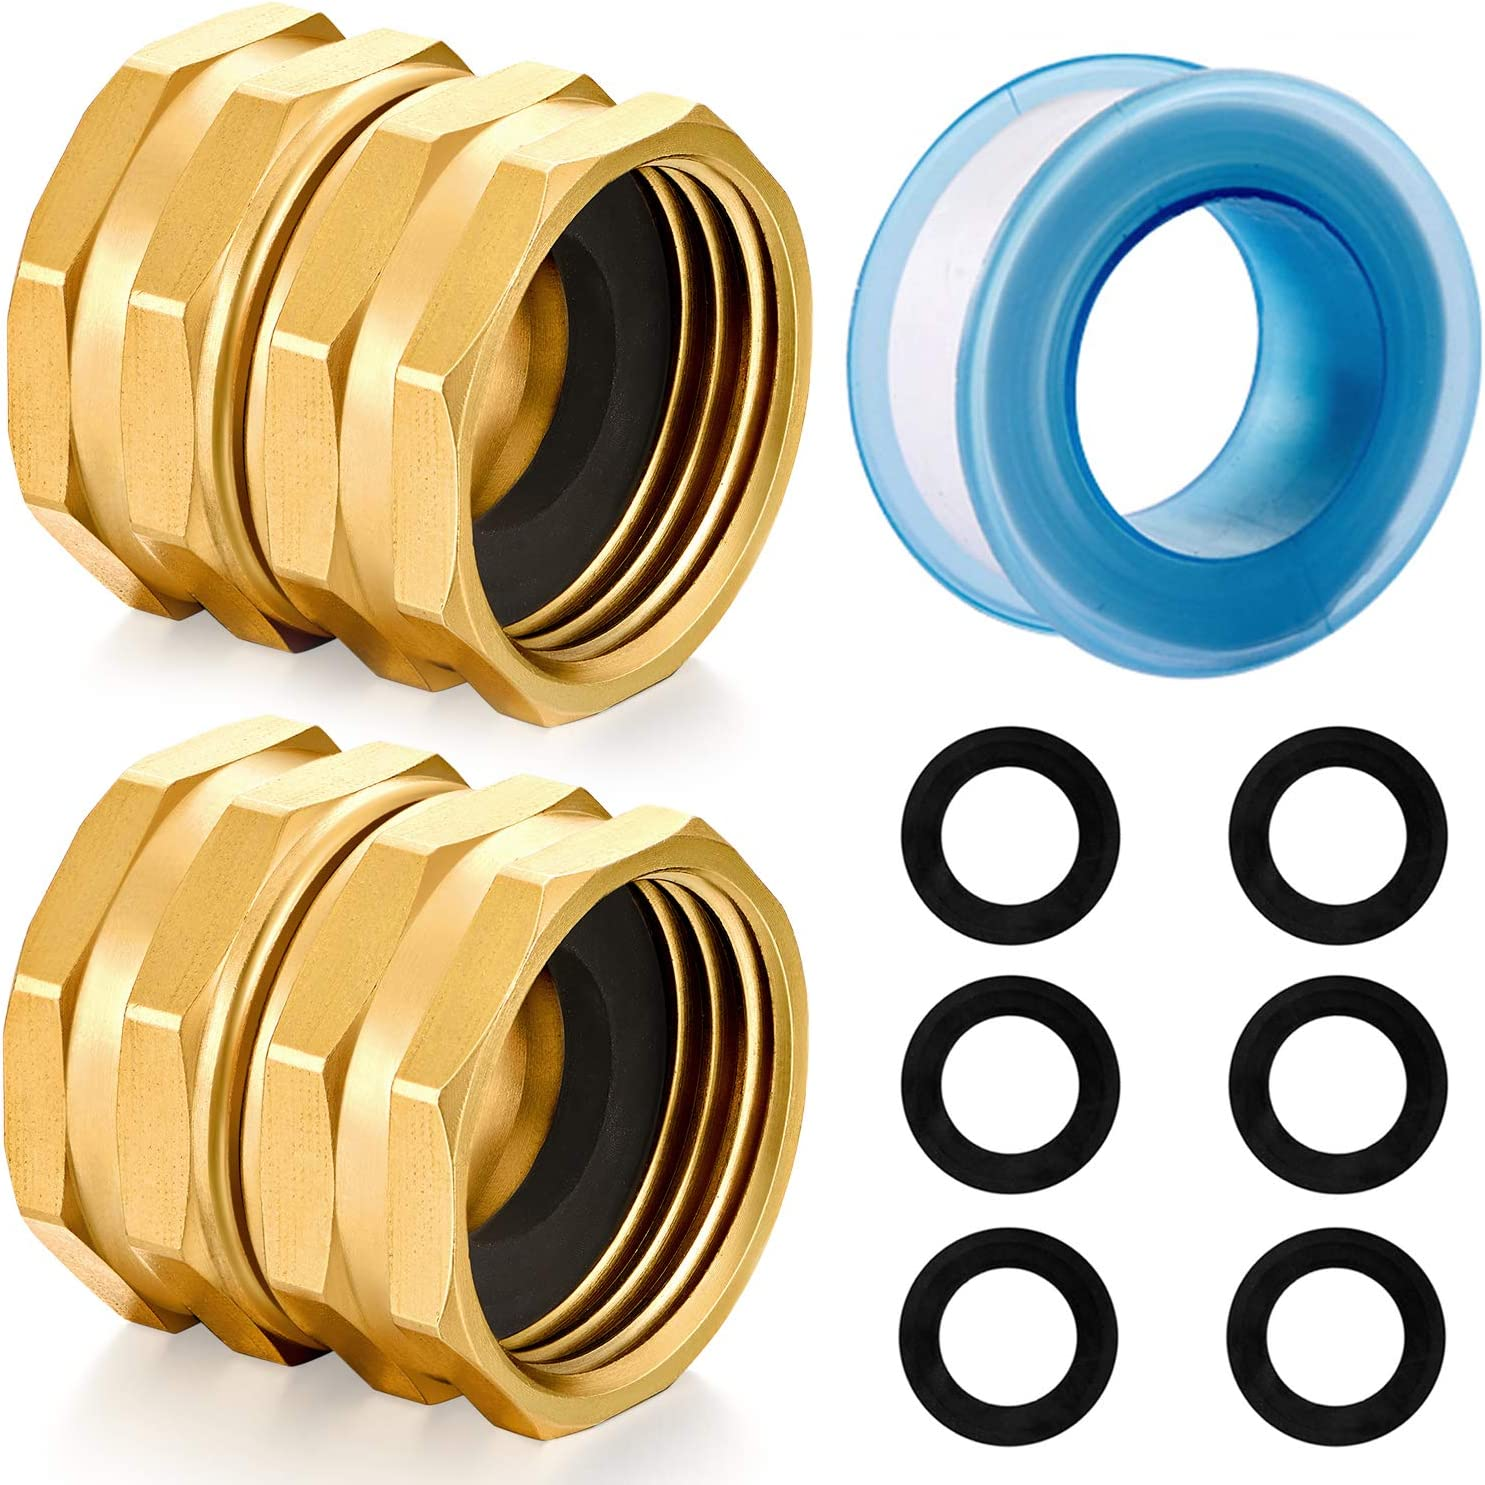 YELUN Solid brass Garden Hose Fittings Connectors Adapter Heavy Duty Brass Repair female to female double female faucet leader coupler dual water hose connector(3/4